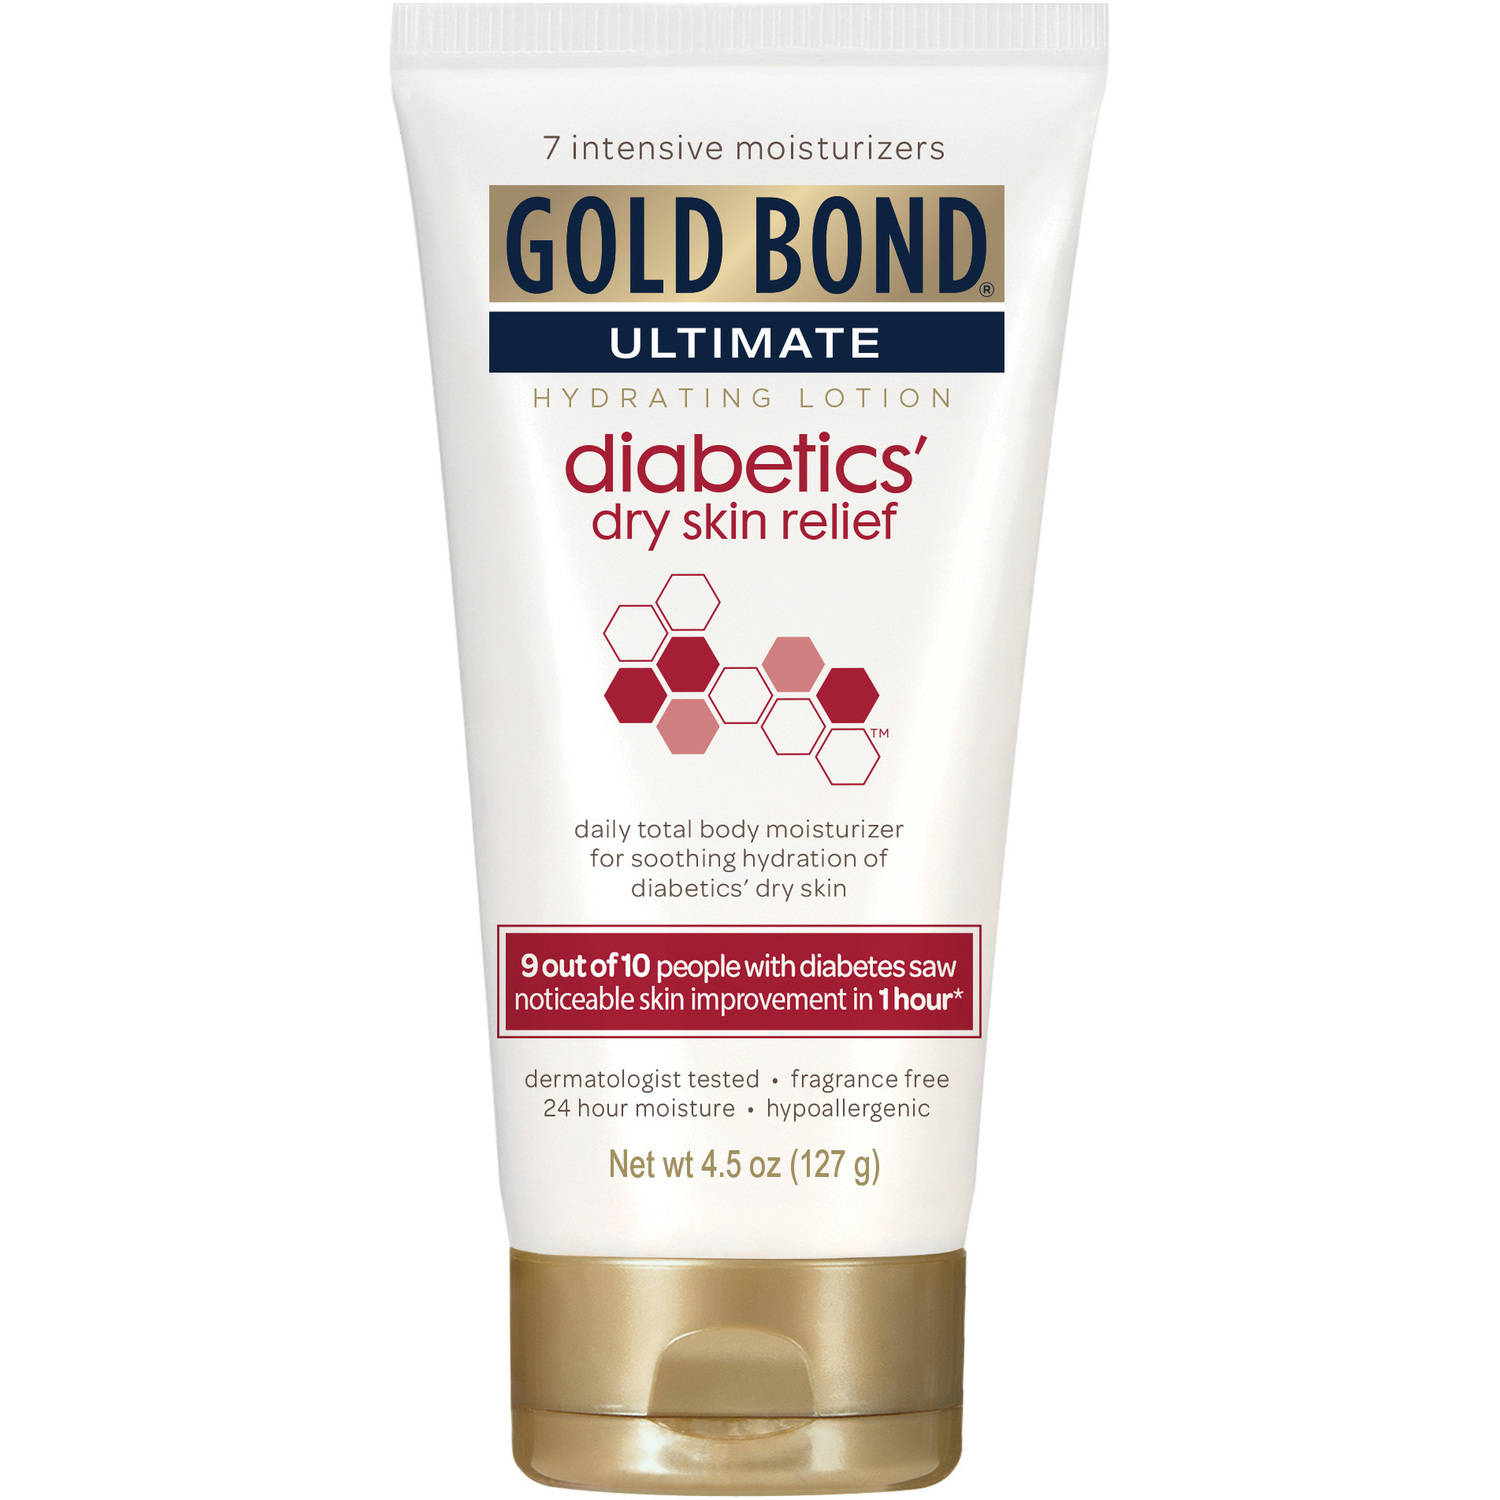 Gold Bond Ultimate Diabetics' Dry Skin Relief Hydrating Lotion, 4.5 oz